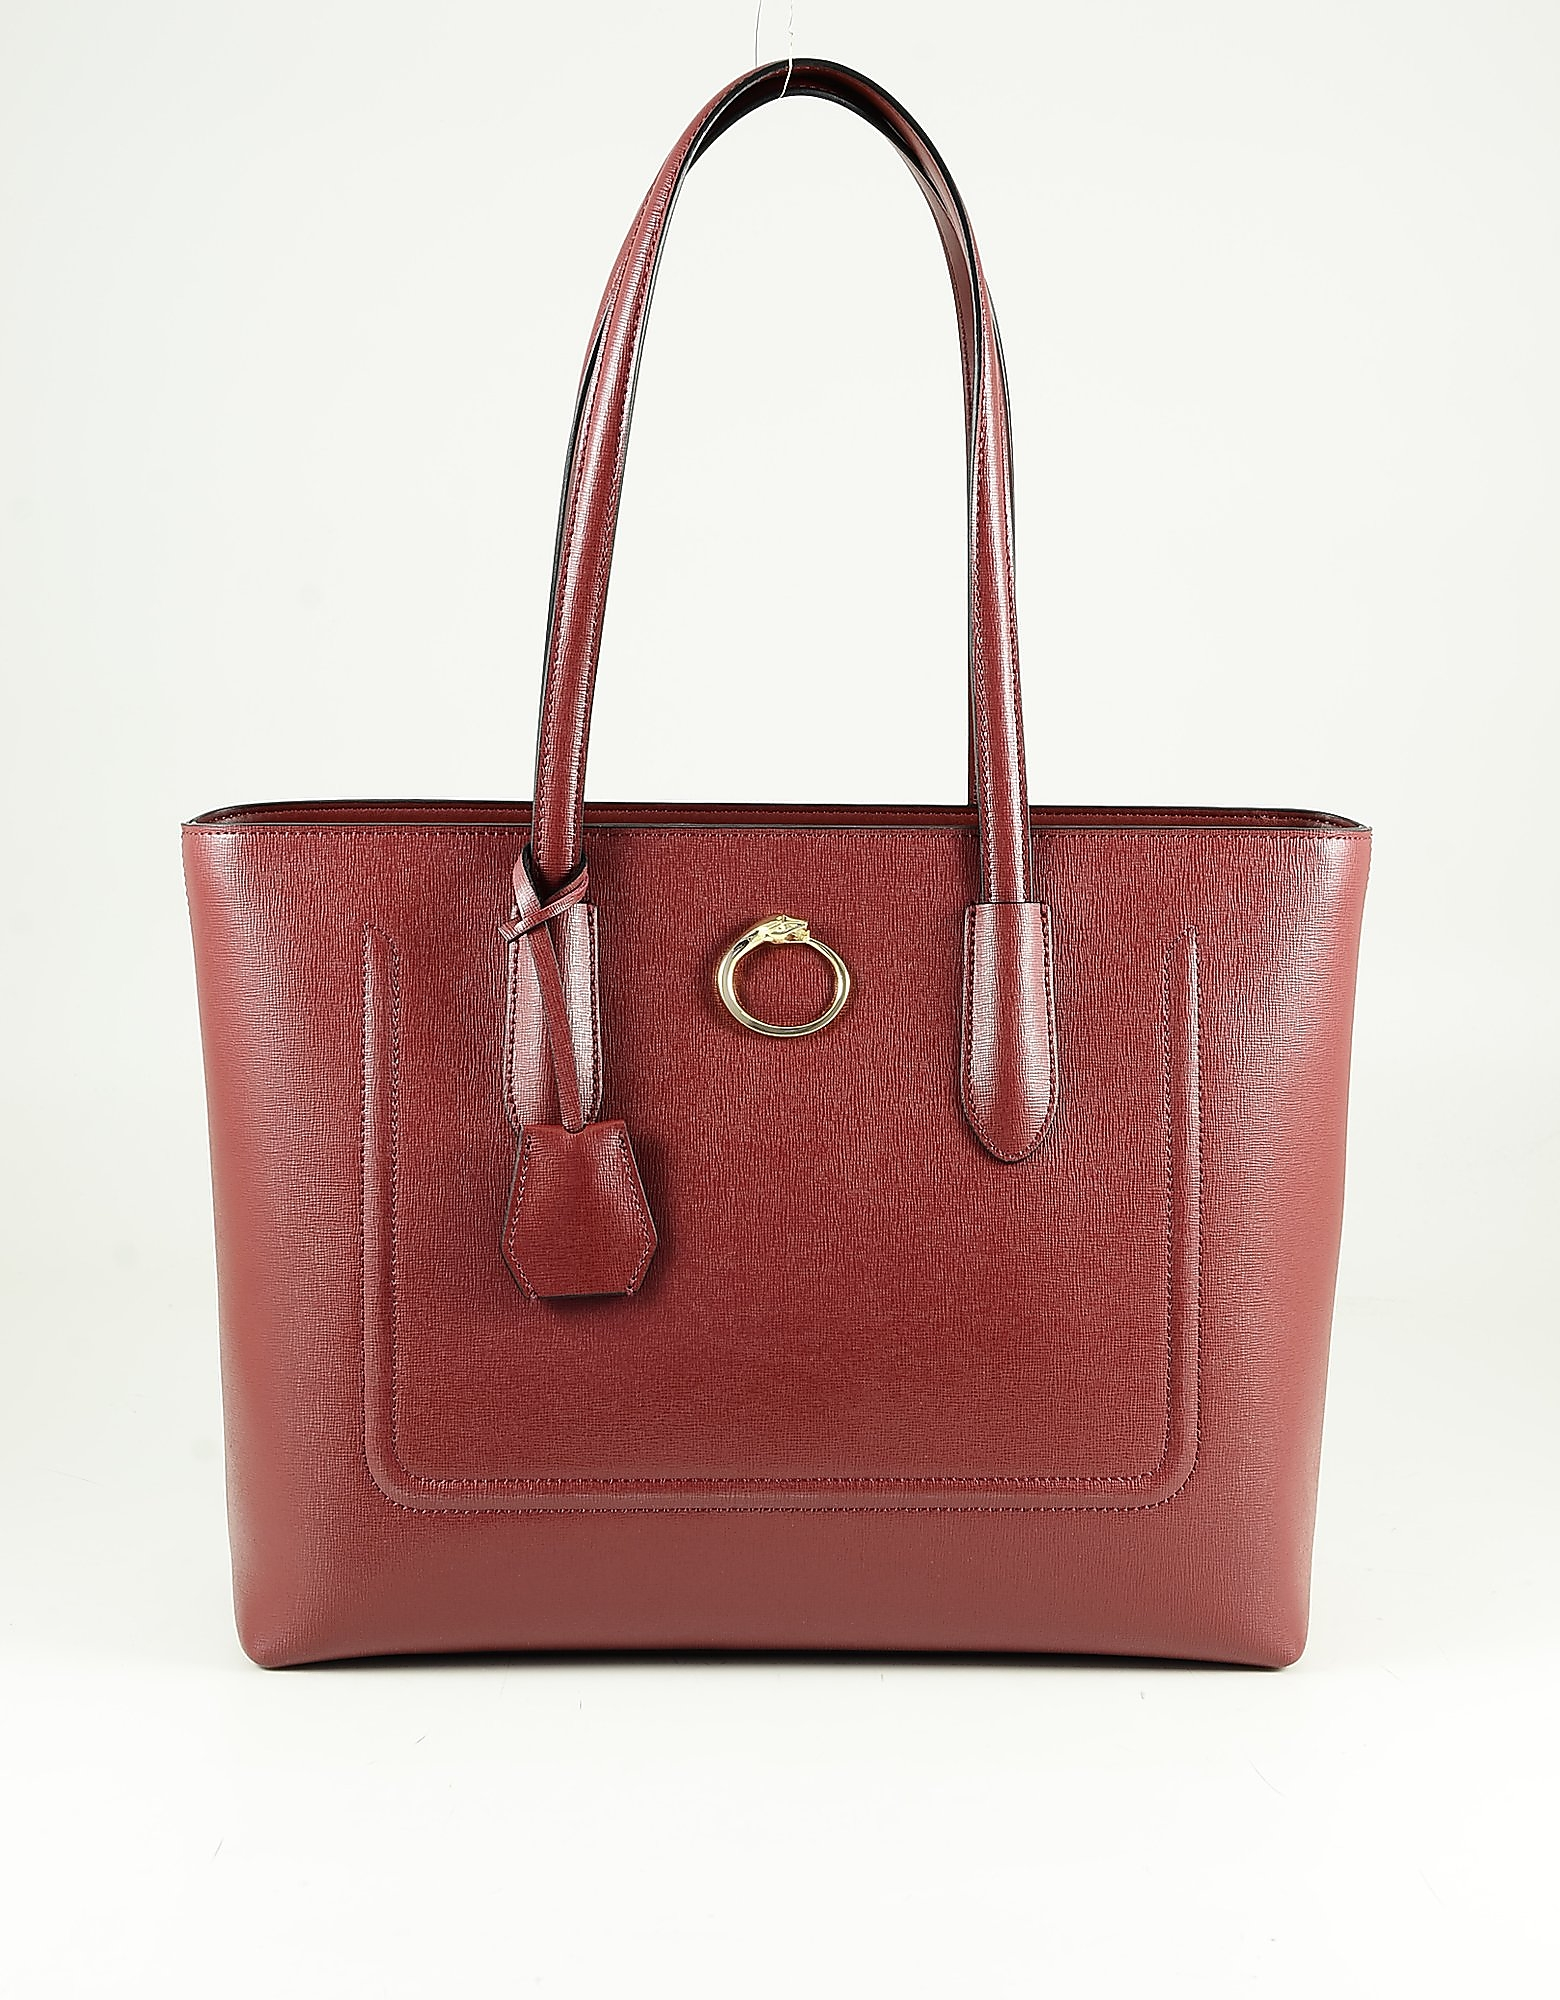 Class Roberto Cavalli Red Leather Tote Bag